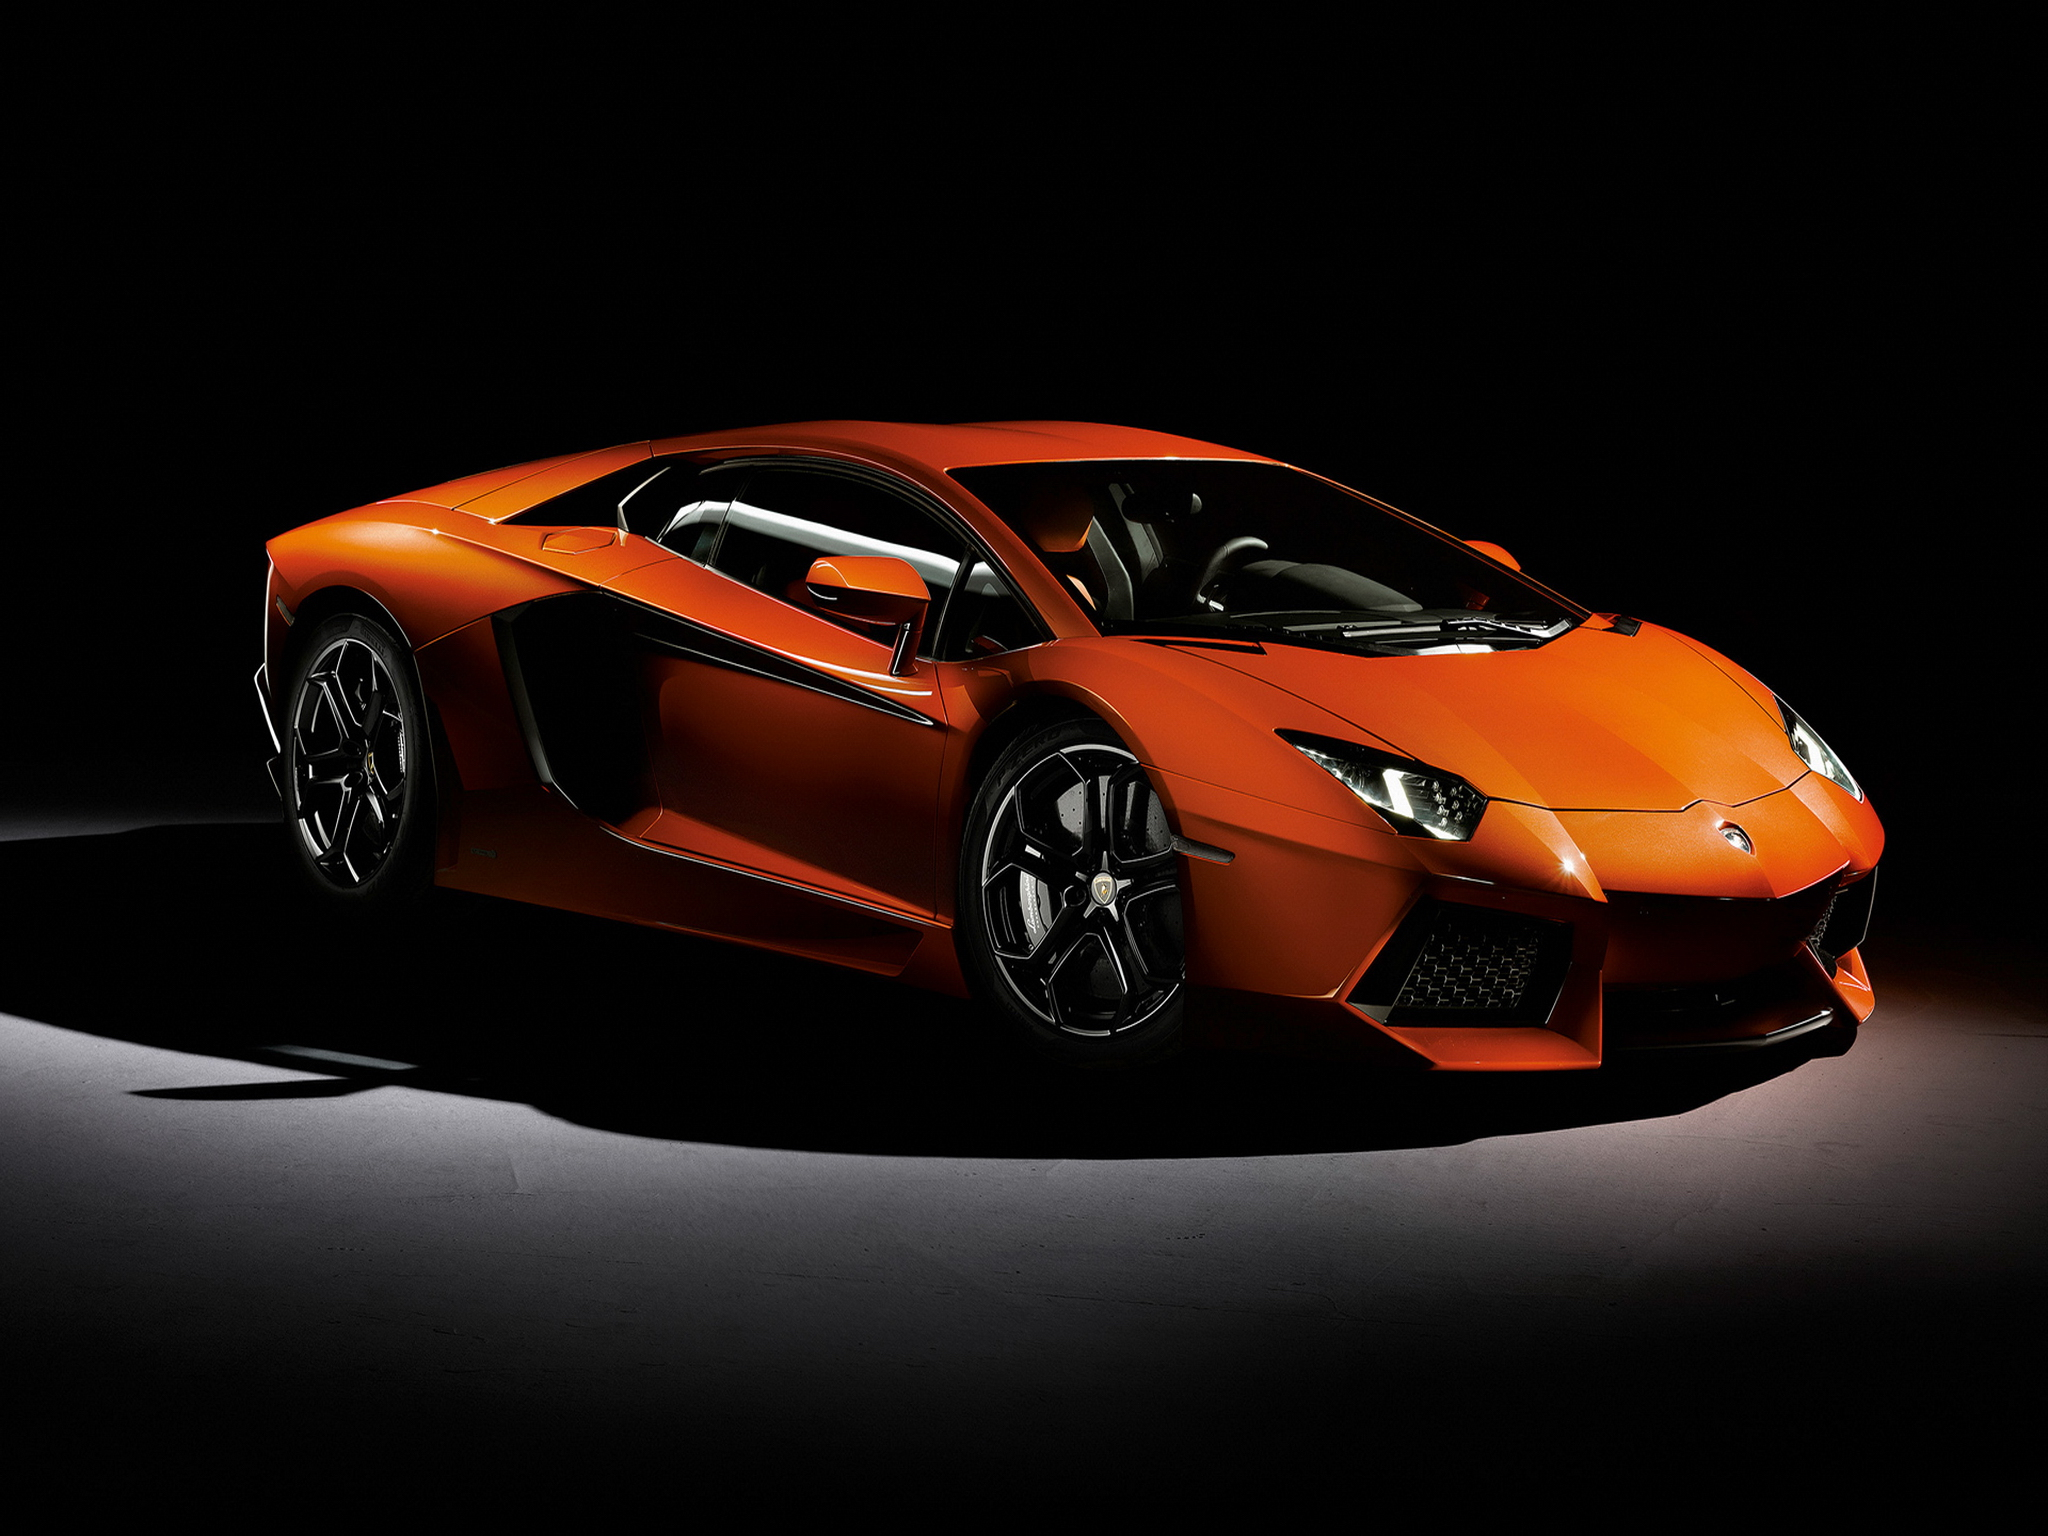 hd lamborghini aventador iPad 3 Wallpapers New iPad 3 Background 2048x1536